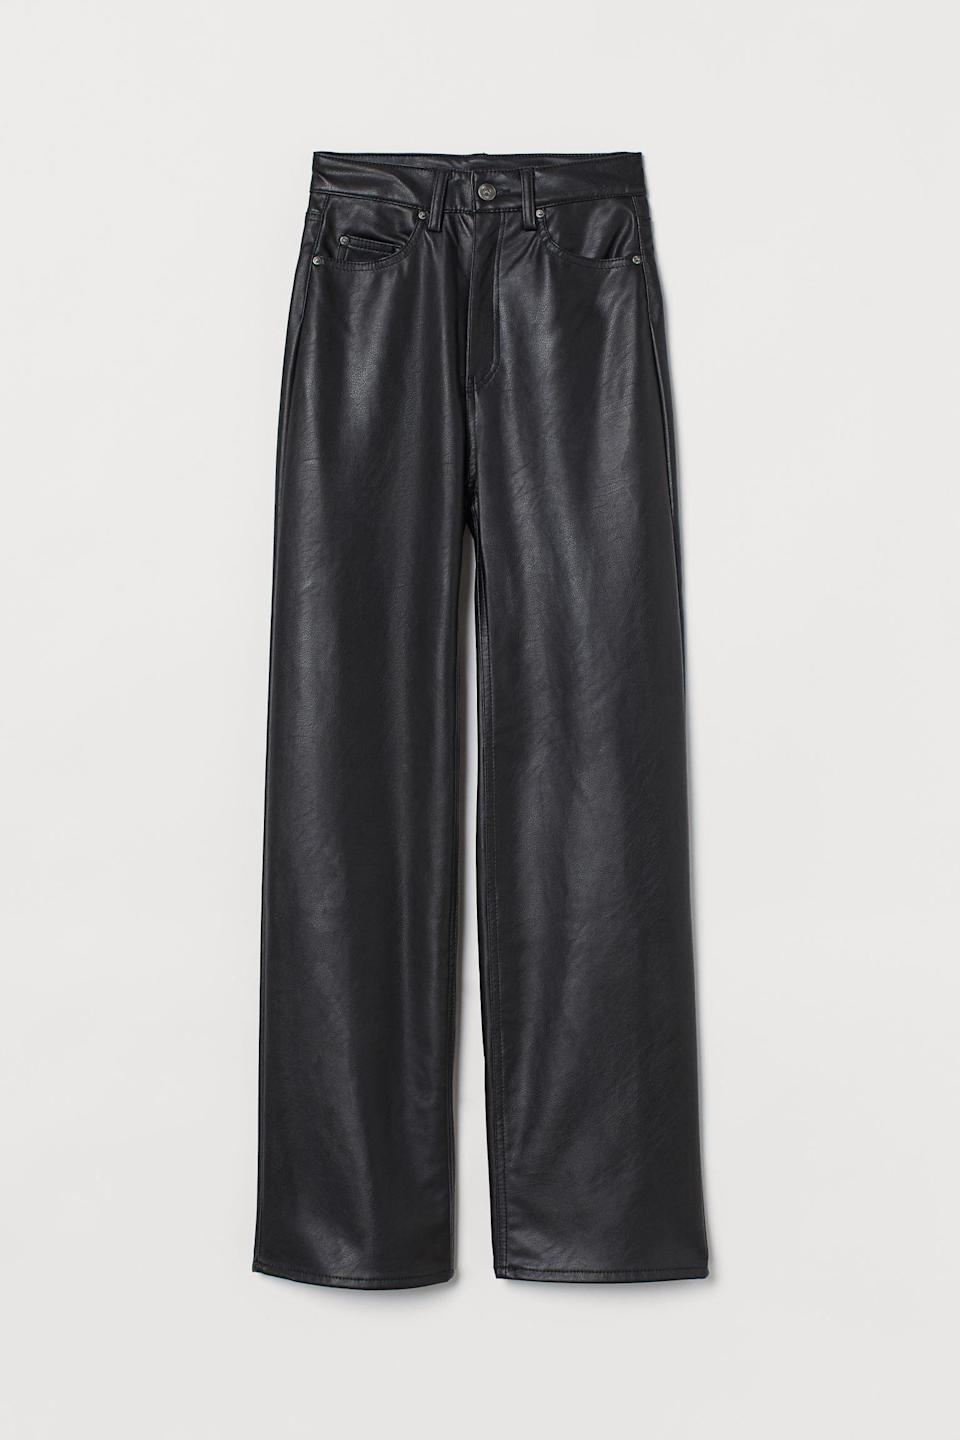 <p>These <span>Faux Leather Pants</span> ($40) will pair nicely with a knit cardigan or a cool tee and shacket.</p>